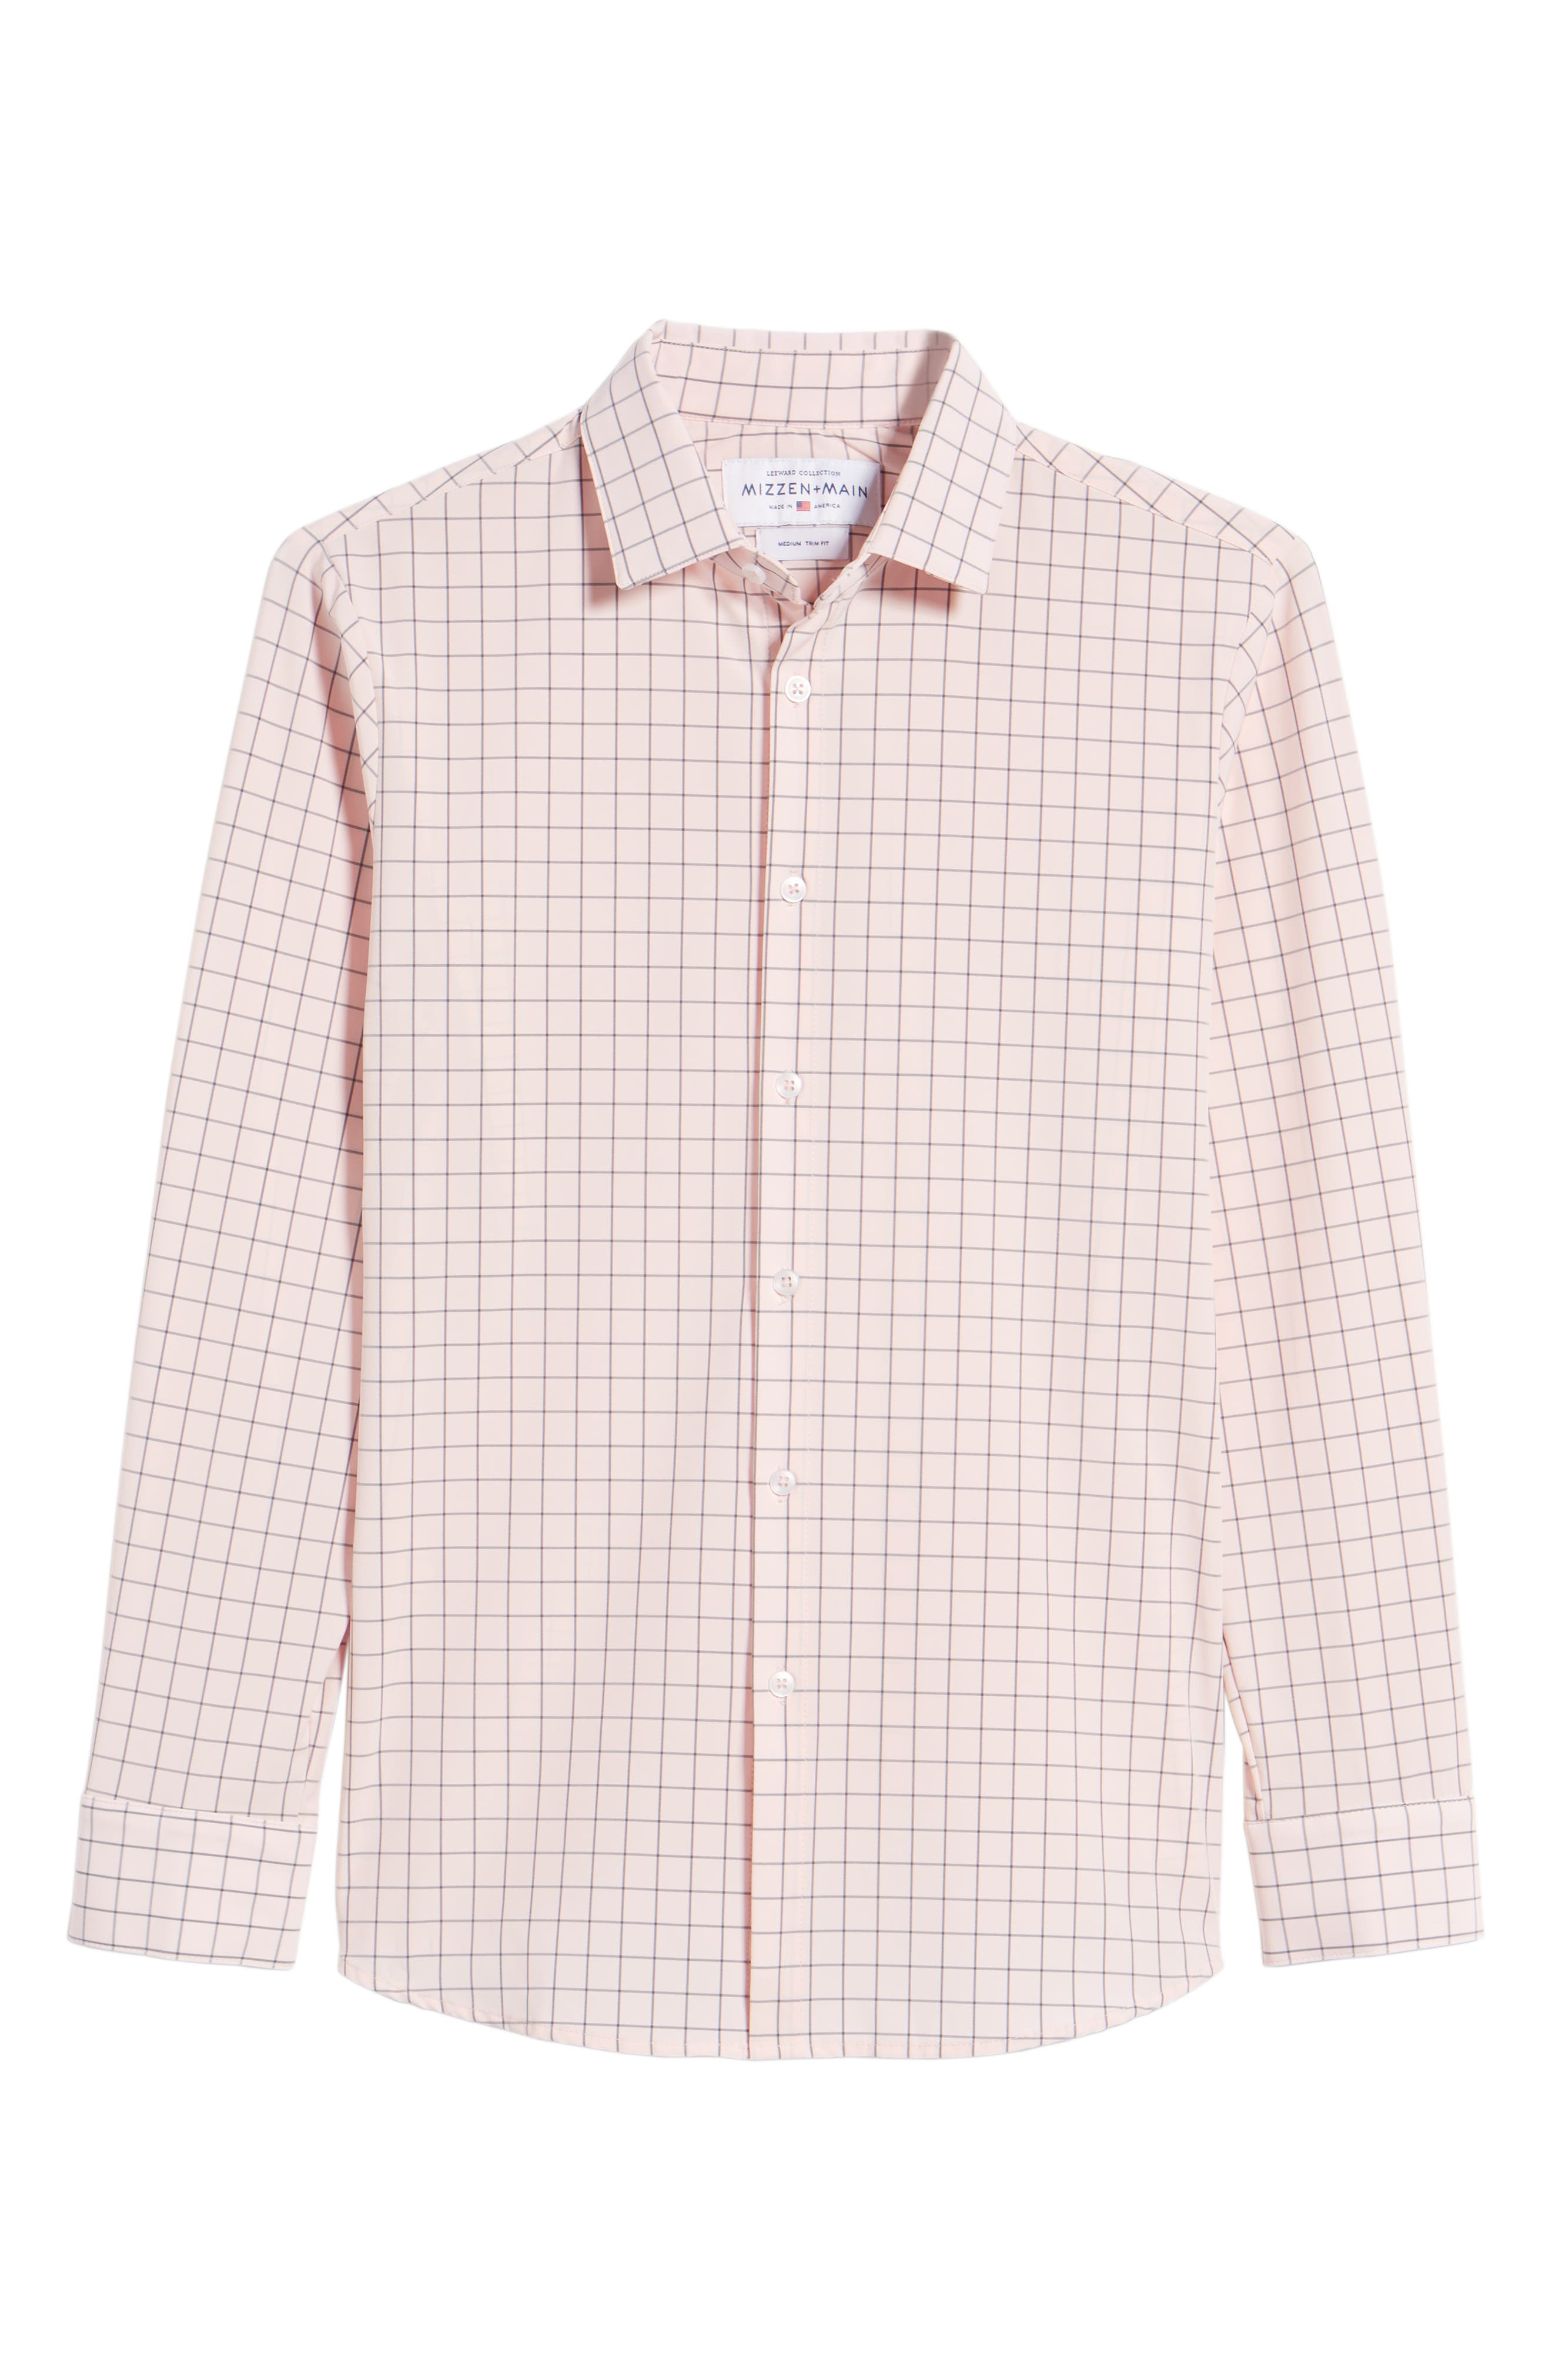 Andrews Slim Fit Windowpane Performance Sport Shirt,                             Alternate thumbnail 6, color,                             Pink